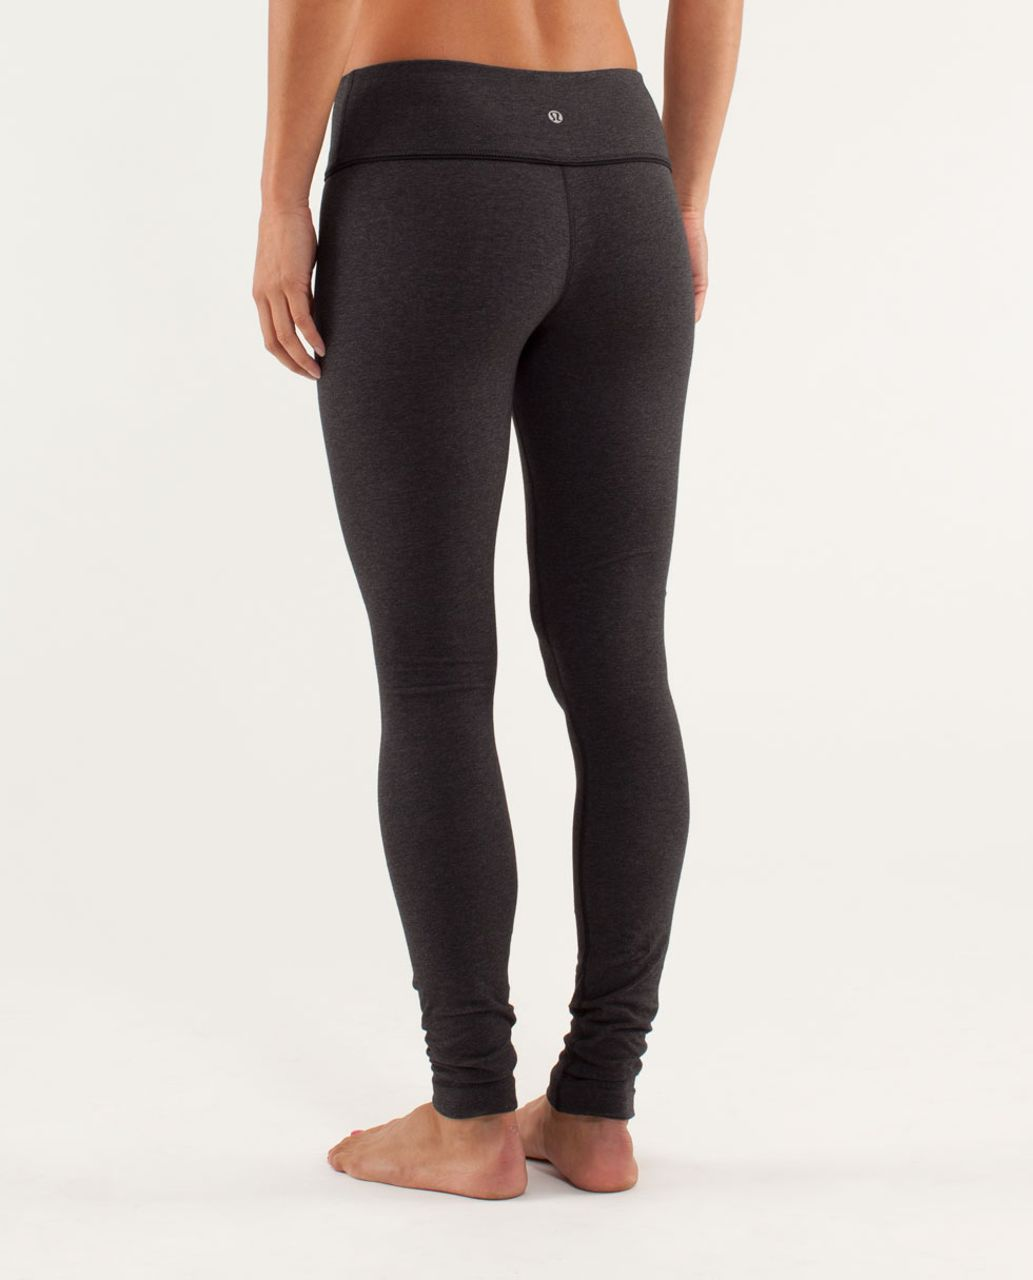 Lululemon Wunder Under Pant *Organic - Heathered Black / Black / Micro Macro Black Heathered Black